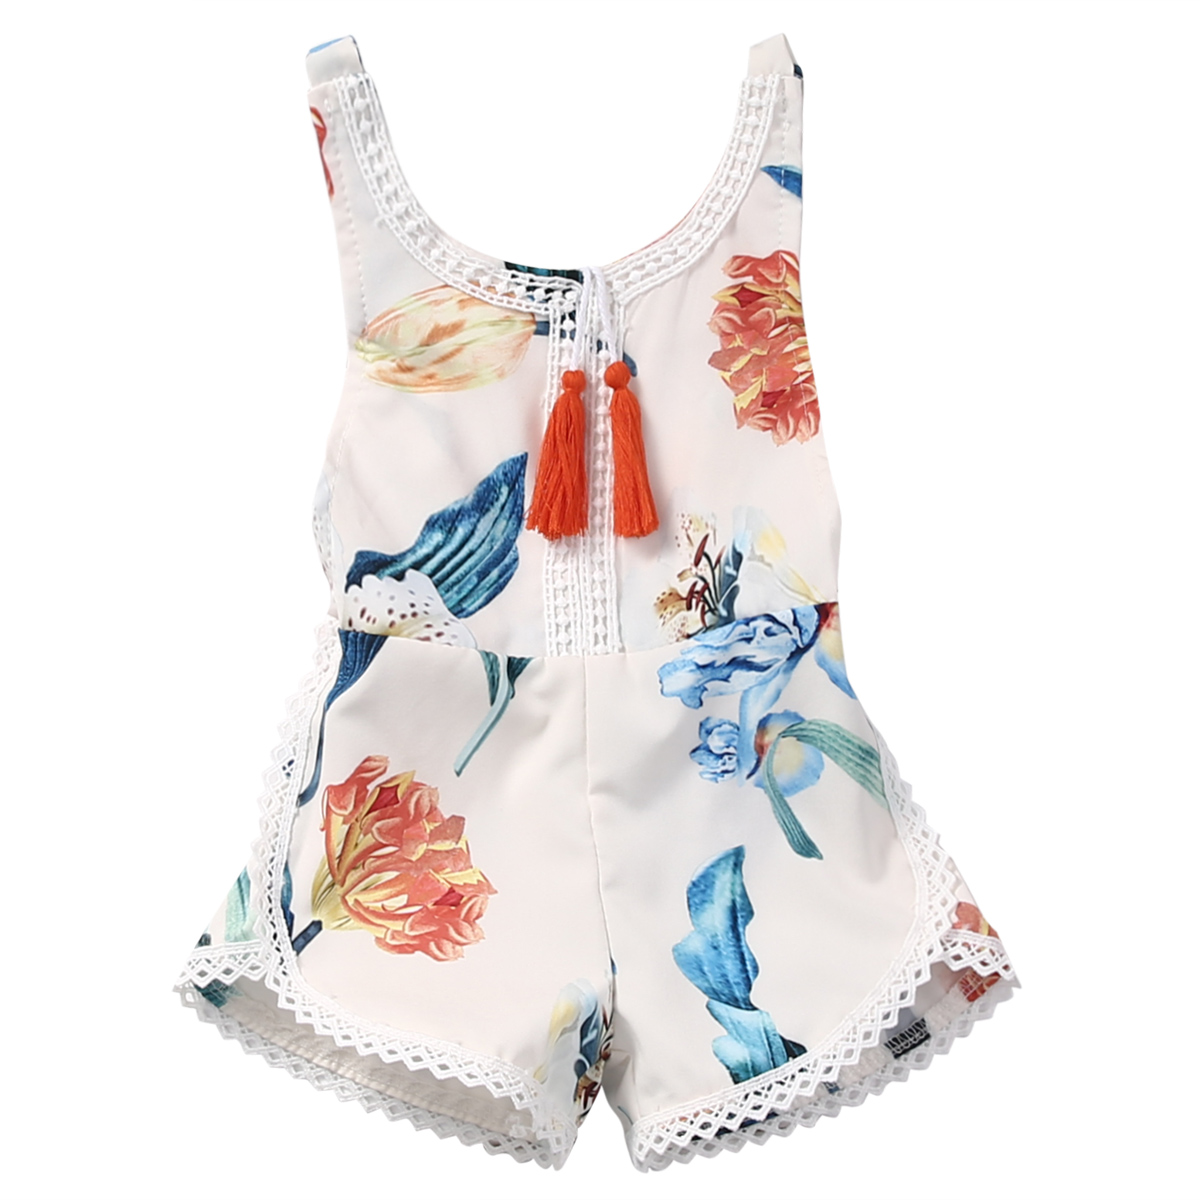 US Stock Newborn Infant Baby Girl Romper Sunflower Jumpsuit Outfit Clothes Dress